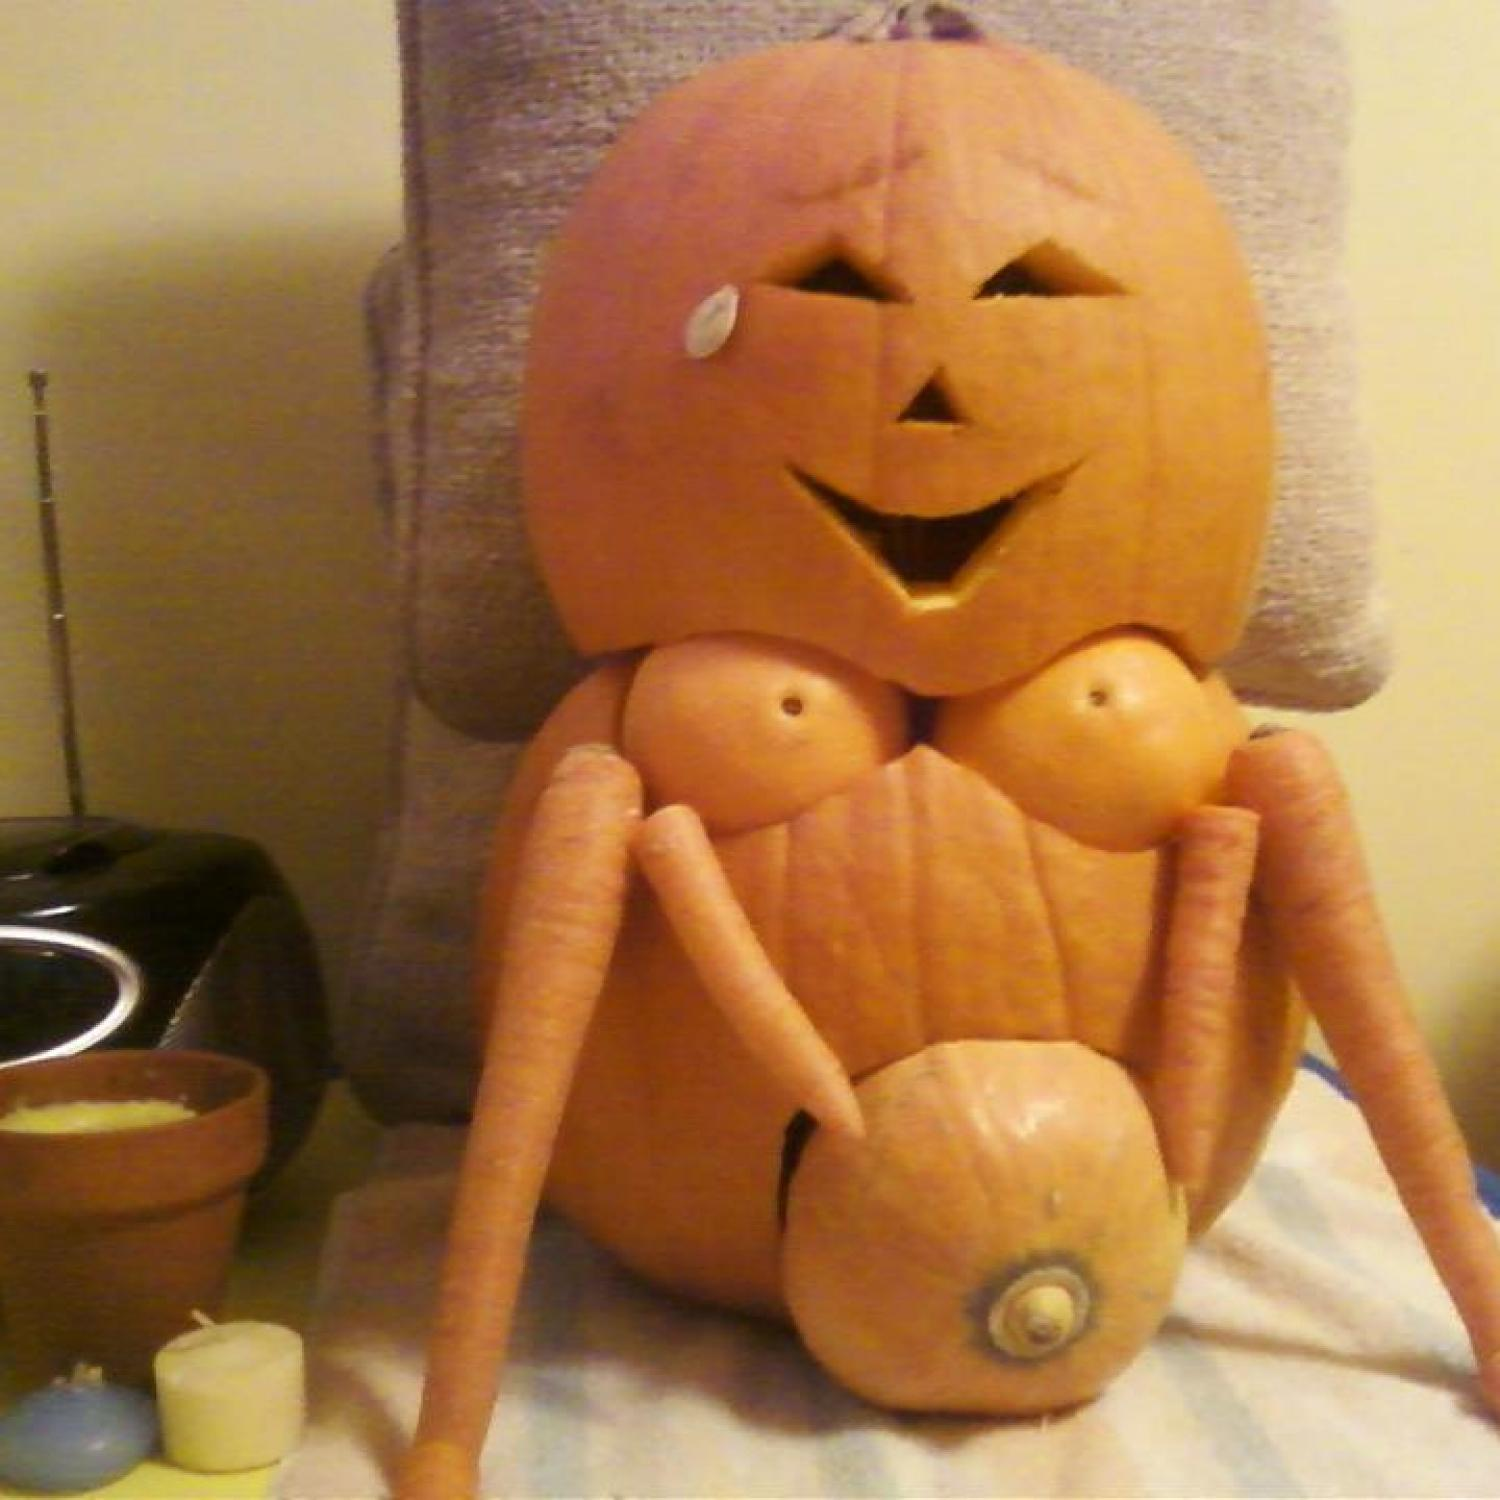 How to make a pumkin sex toy